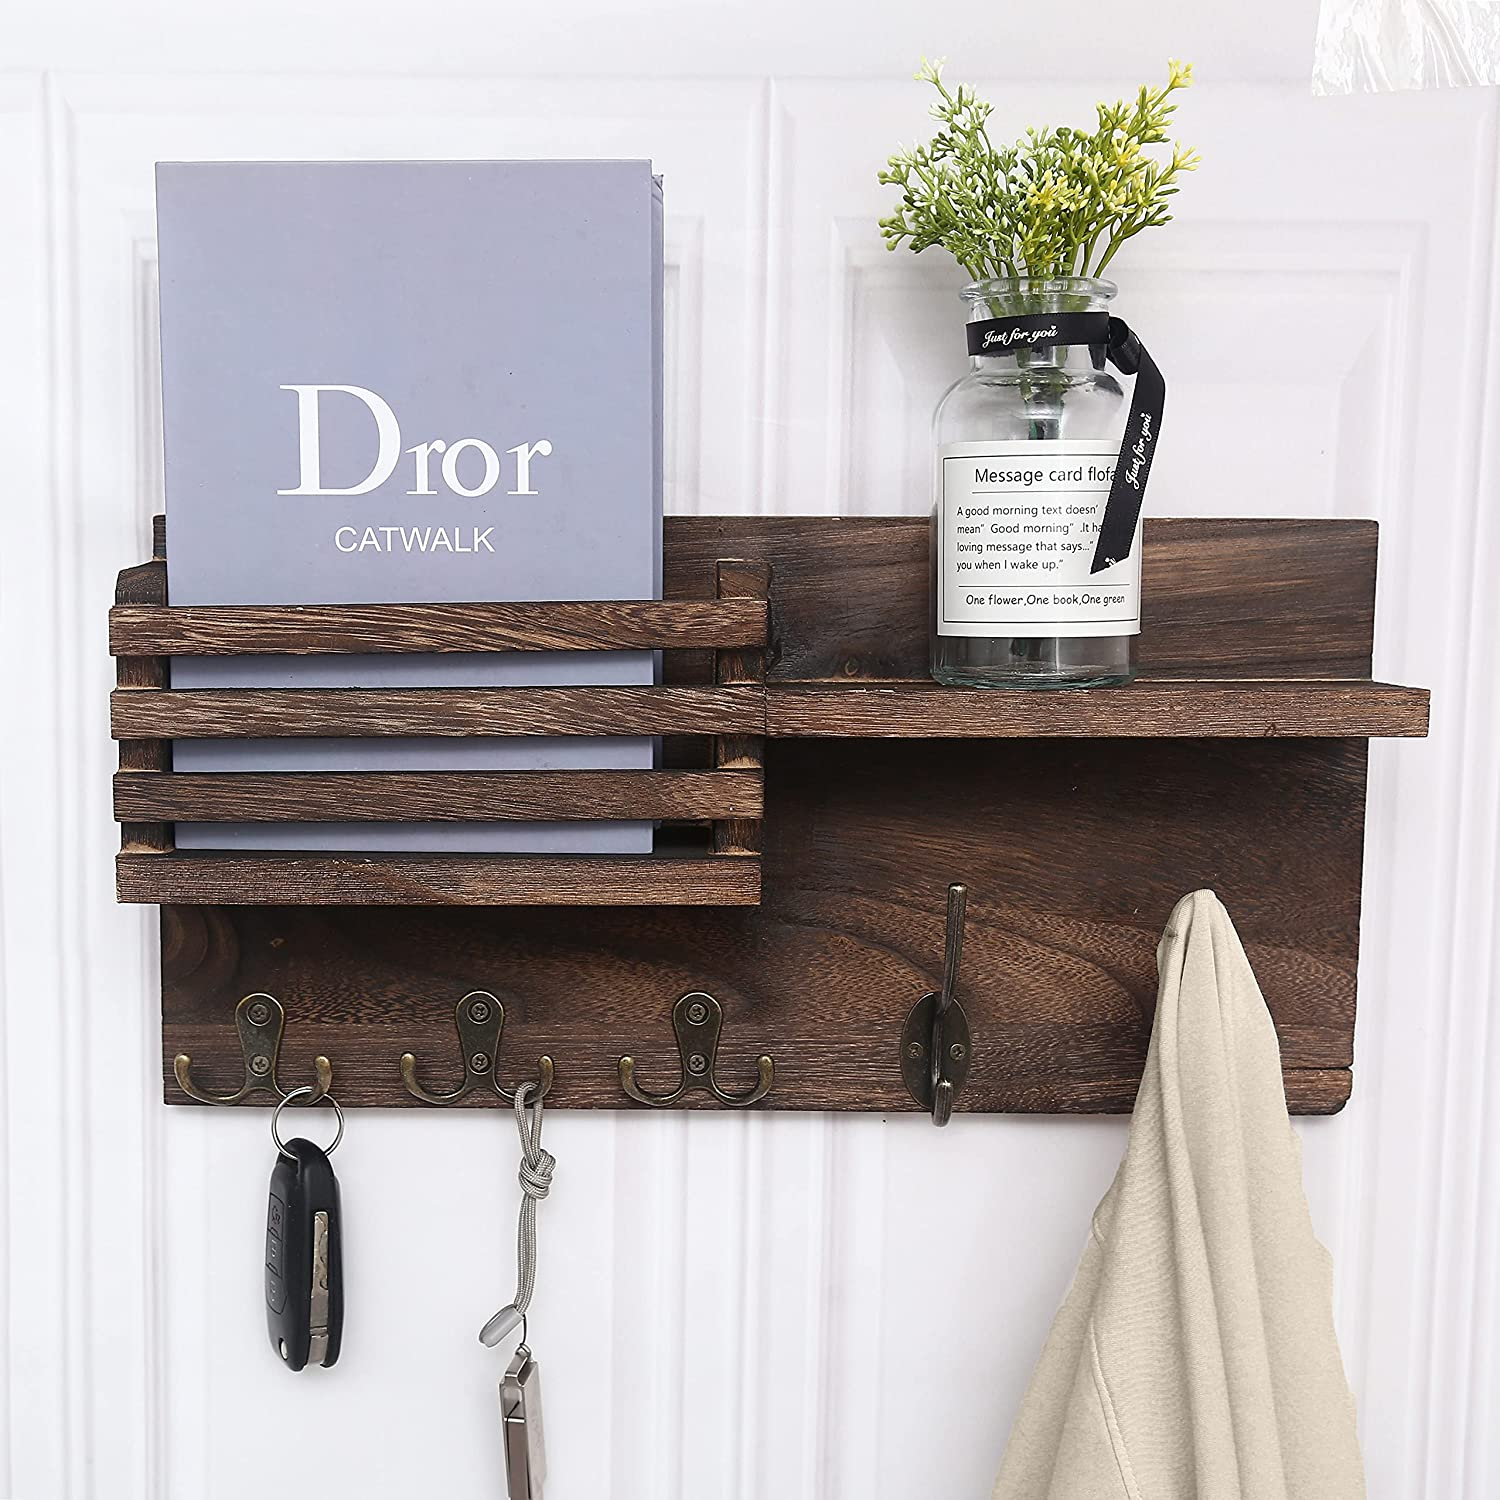 Key Holder for Wall, Key Hanger Mail Sorter Organizer Wall PaulowniaWood Key Hooks for Wall Decorative, Home Decor and Storage for Entryway, Hallway, Office, Mudroom Brown